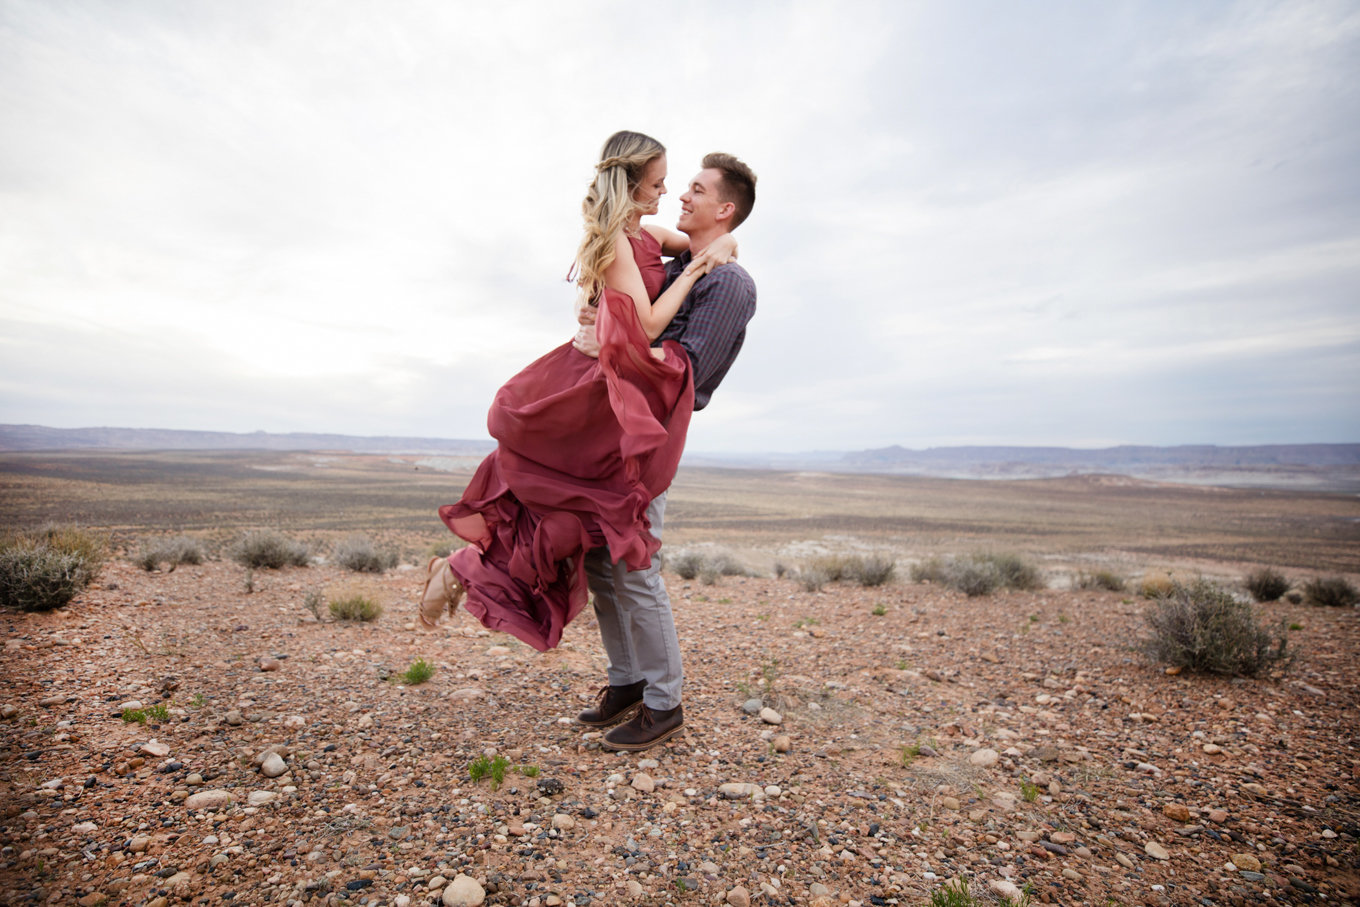 Engagement photography wedding arizona